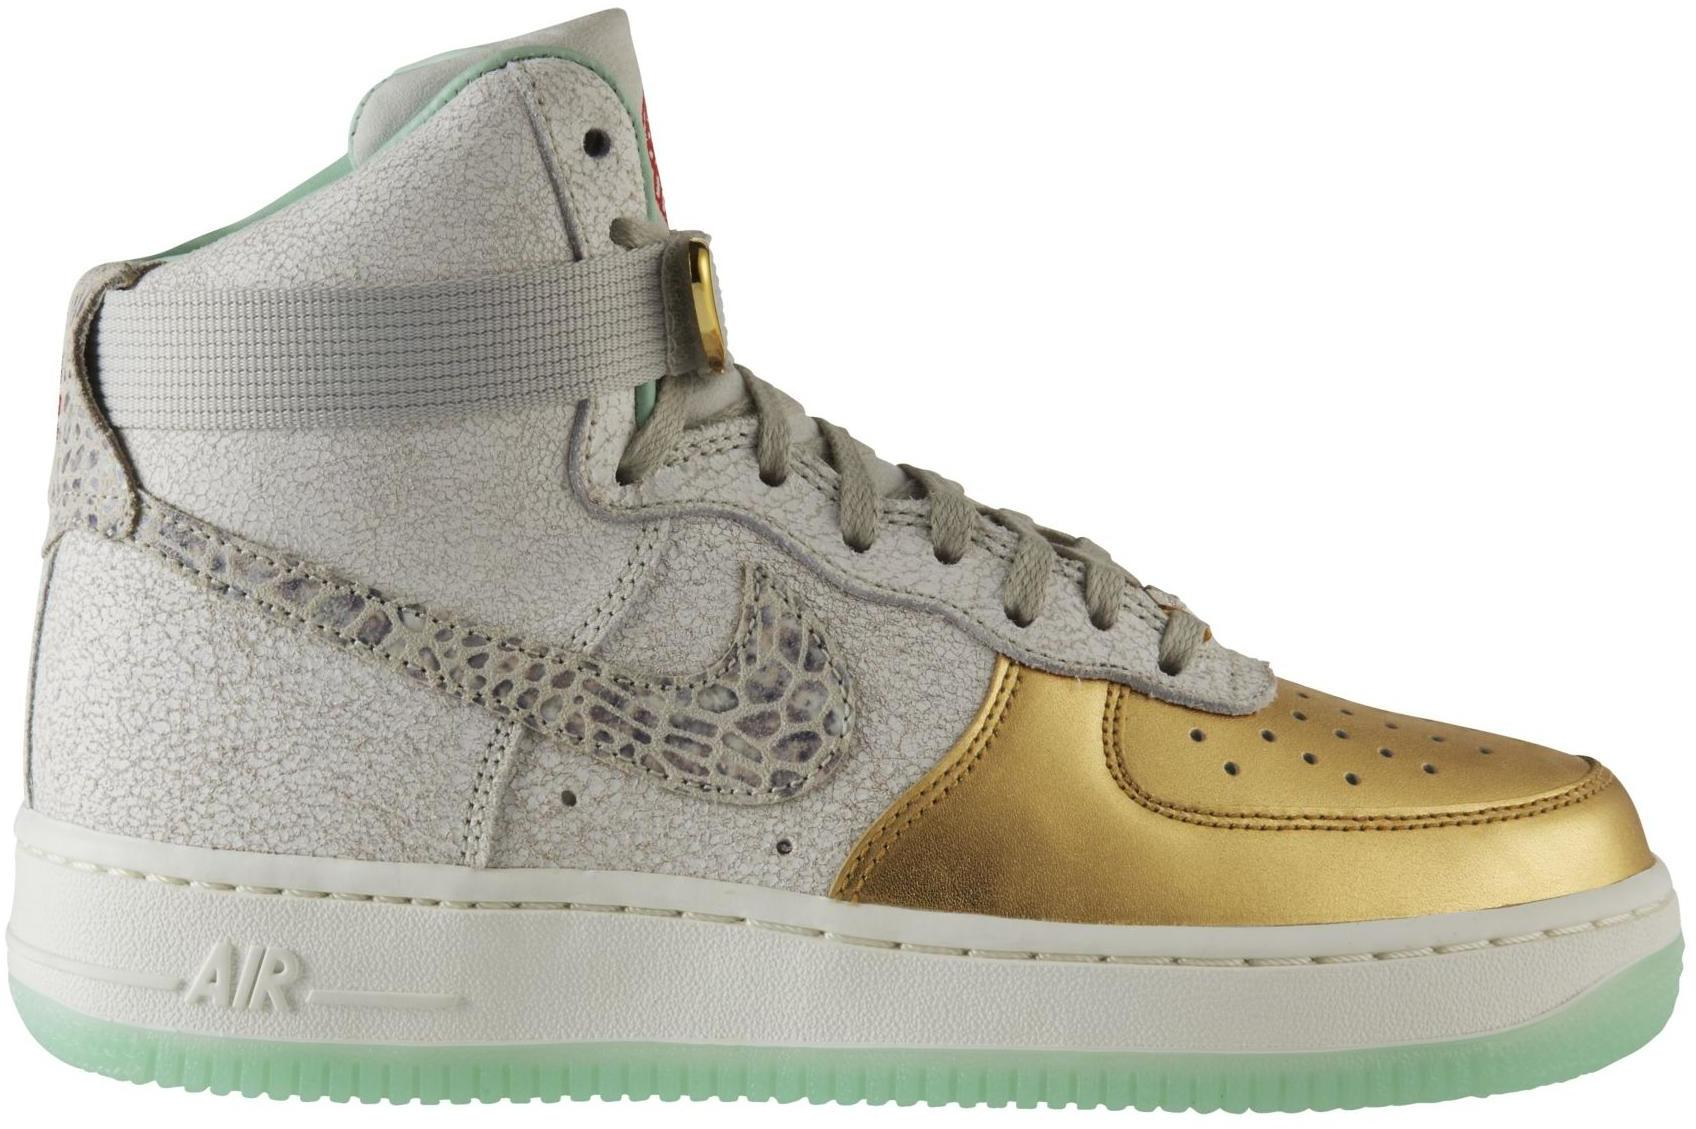 nike air force 1 high year of the horse